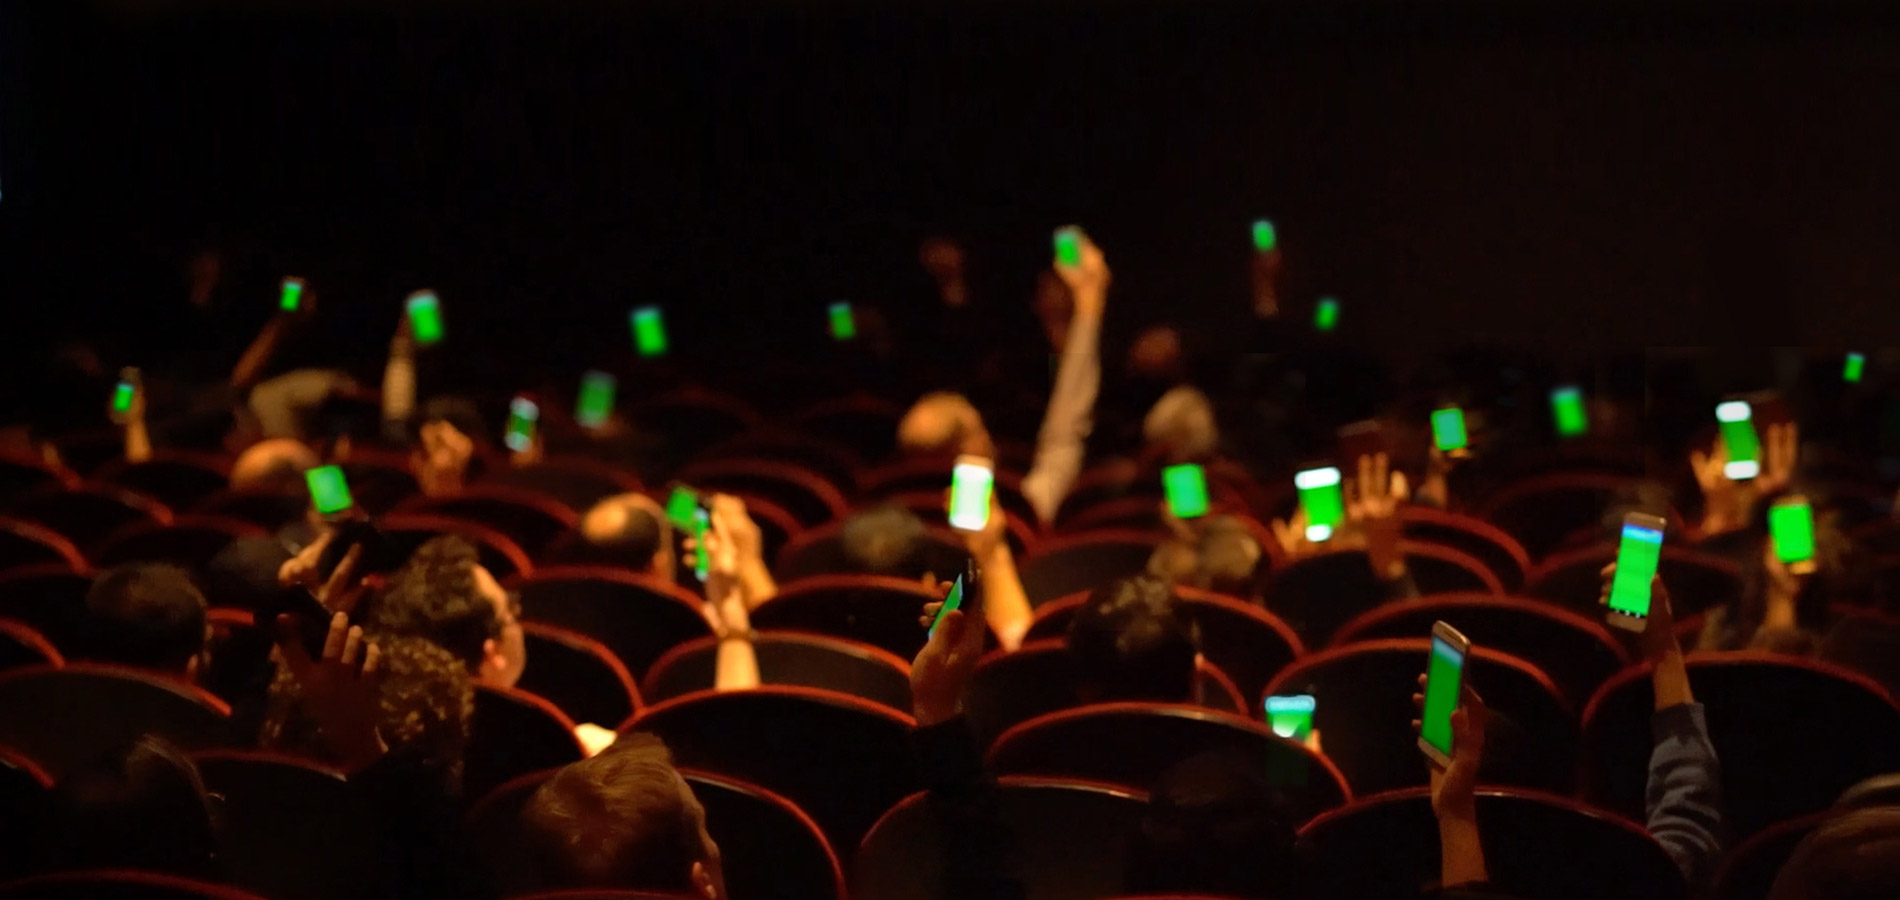 Apps lighting up according to how the audience answers polling questions.